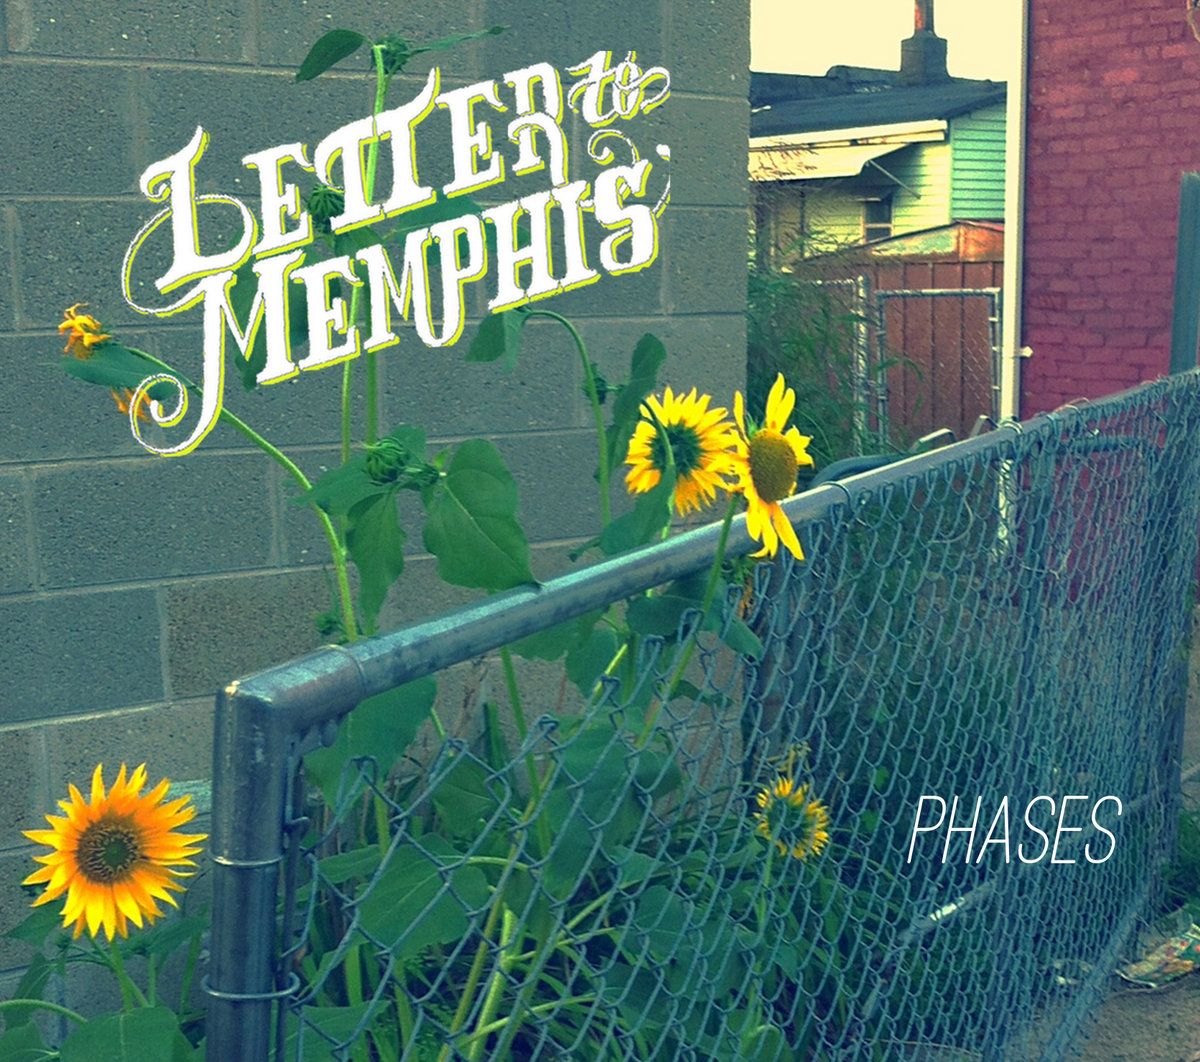 Phases | Letter to Memphis